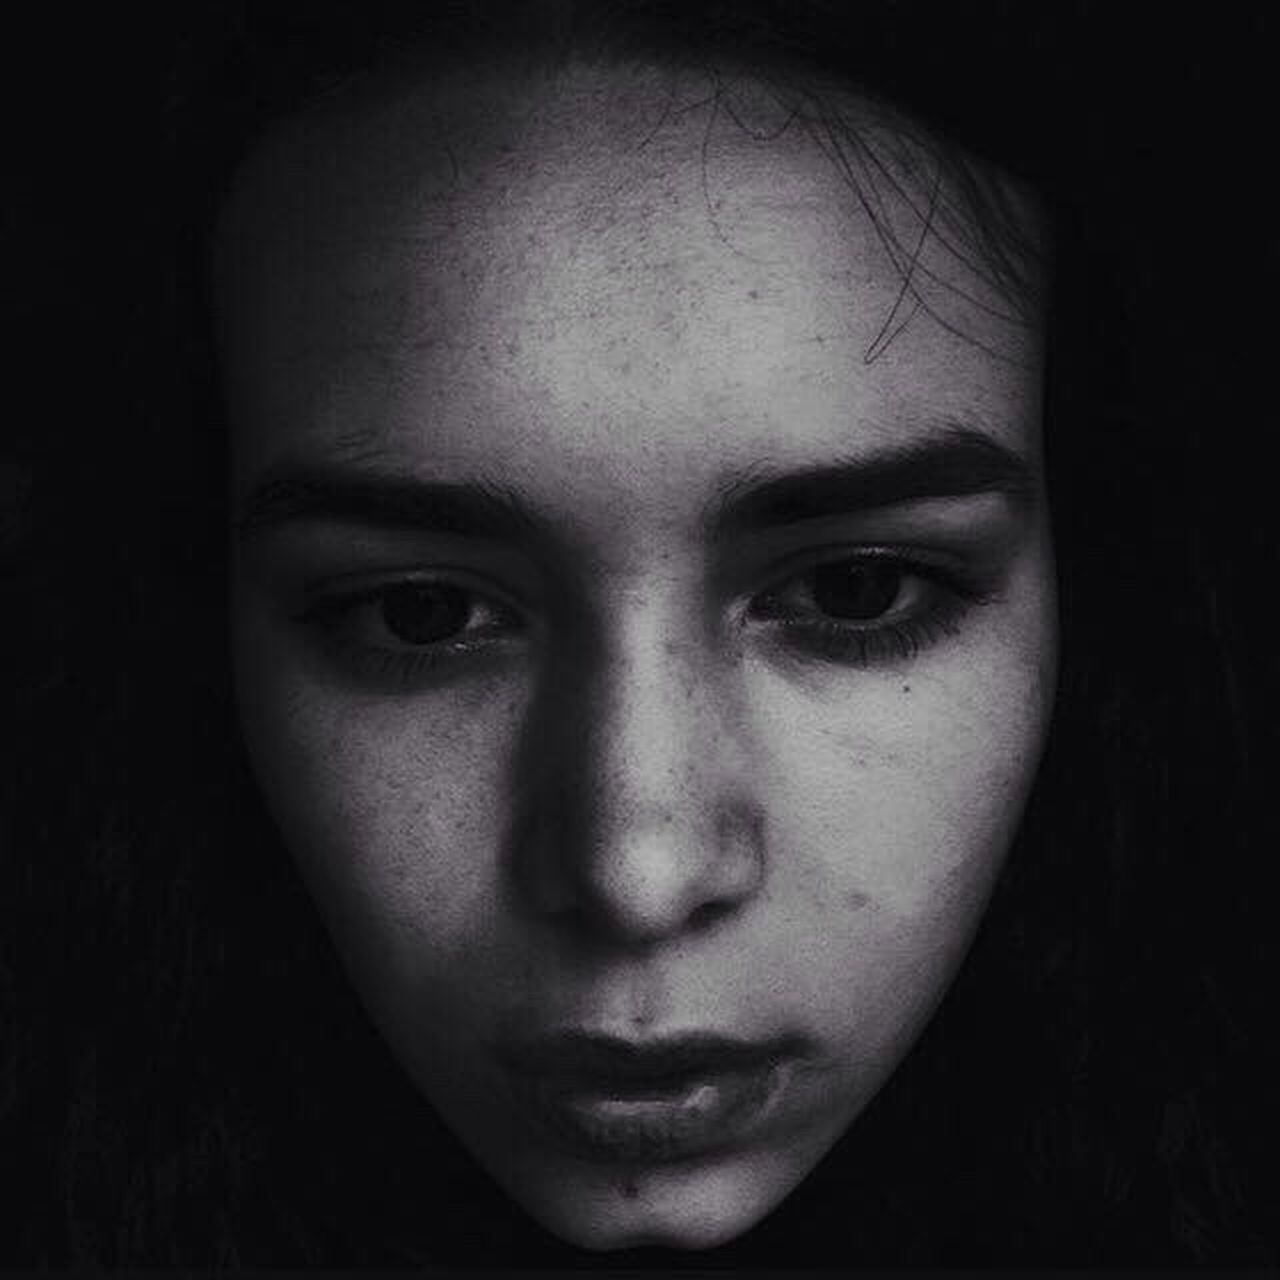 sadness, depression - sadness, looking at camera, human face, horror, one person, portrait, spooky, fear, close-up, only women, young adult, human eye, one woman only, adults only, one young woman only, adult, human body part, childhood, young women, women, real people, people, halloween, day